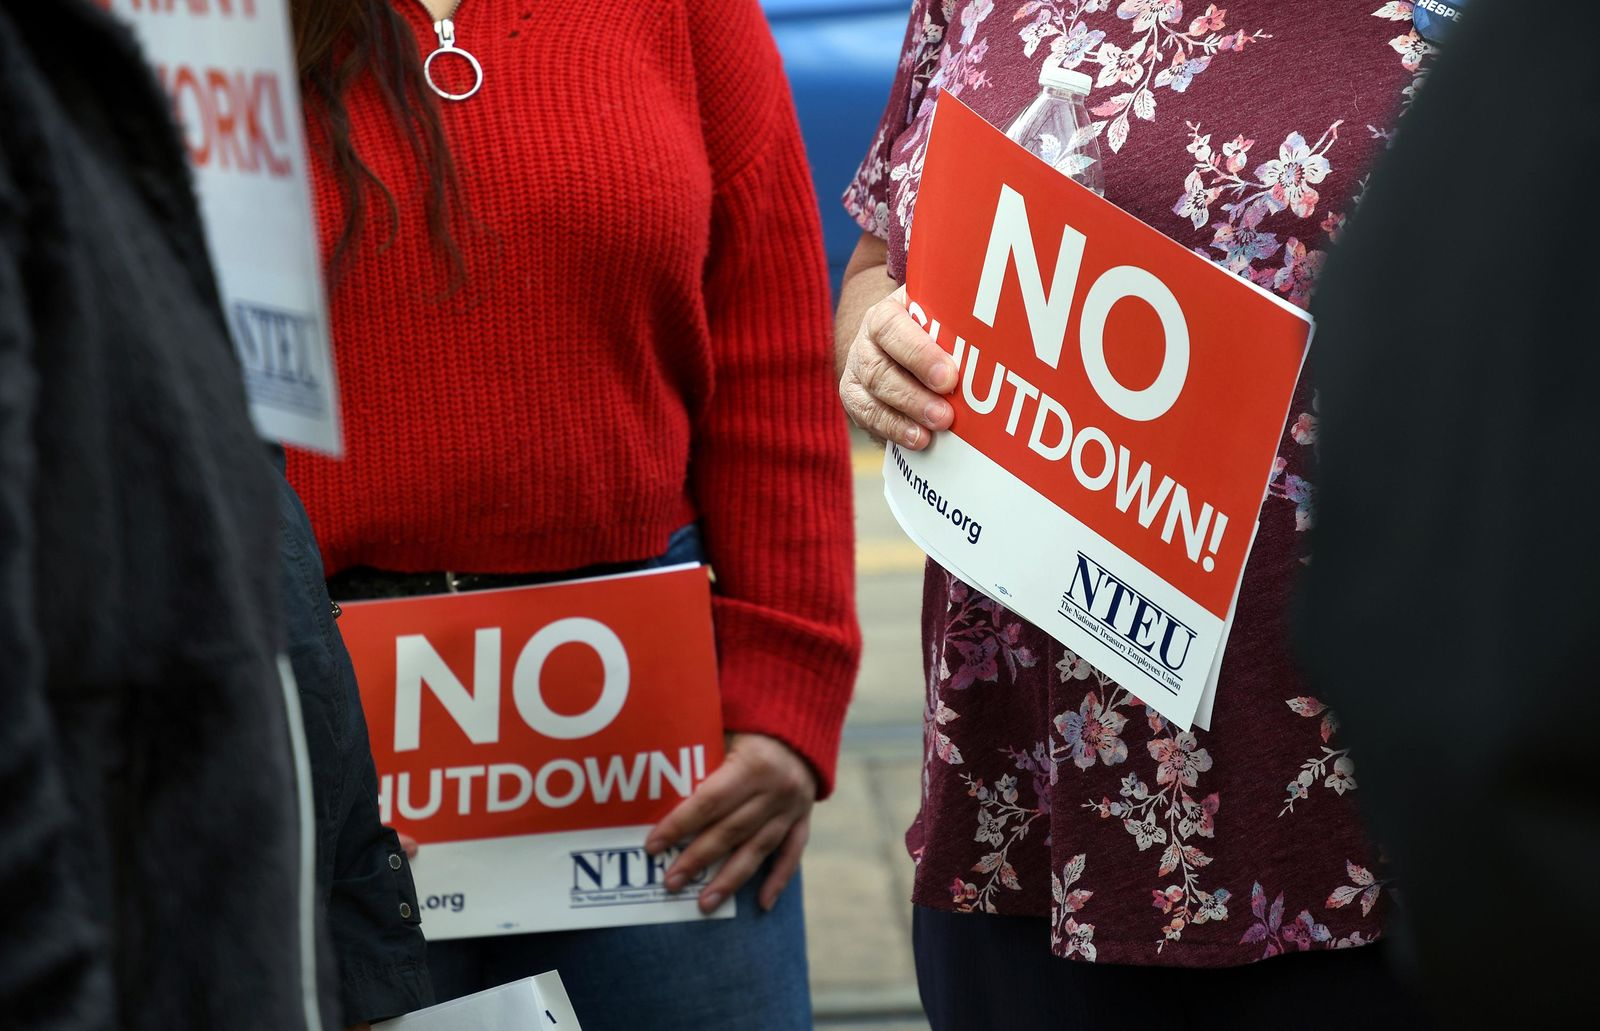 People protest the partial government shutdown in downtown Denver on Thursday, Jan. 10, 2019. Federal workers are scaling back spending, canceling trips, applying for unemployment benefits, seeking second jobs and taking out loans to stay afloat, with no end in sight for a shutdown that enters its 21st day Friday, and will be the longest in history by this weekend. (AP Photo/Thomas Peipert)